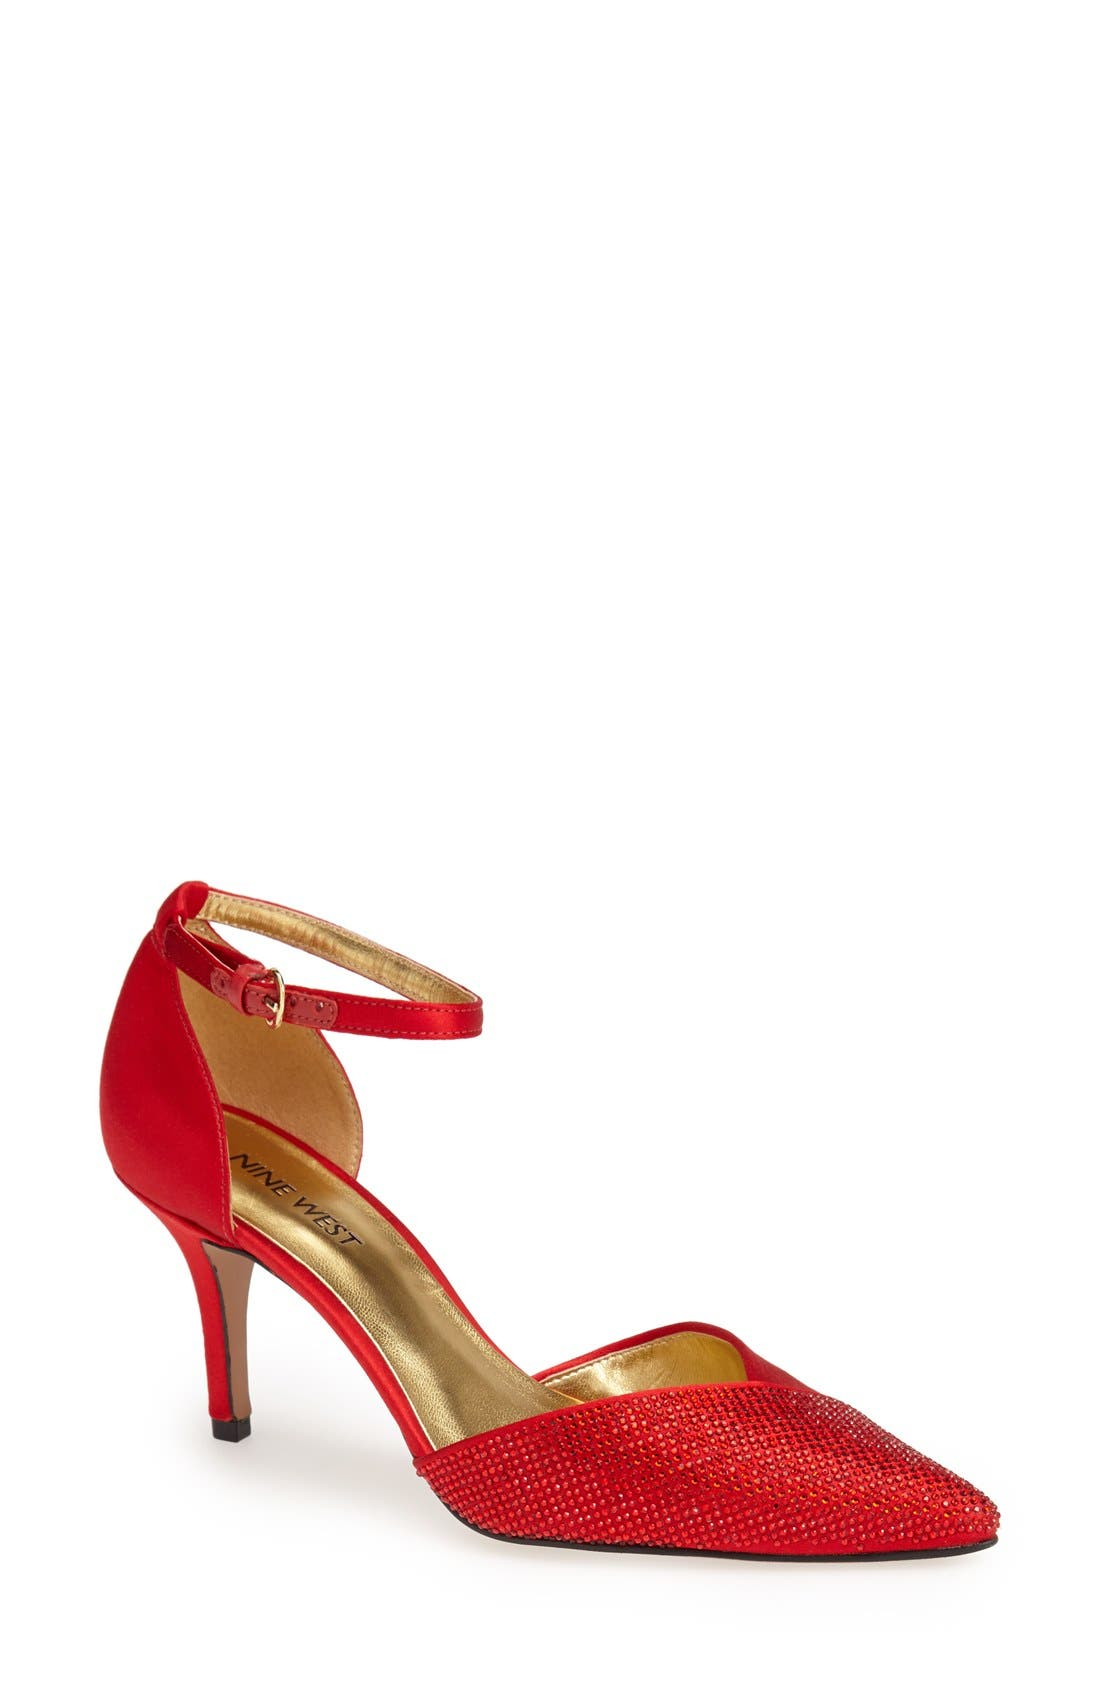 Main Image - Nine West 'Knowledge' Pointy Toe Satin Pump (Women)